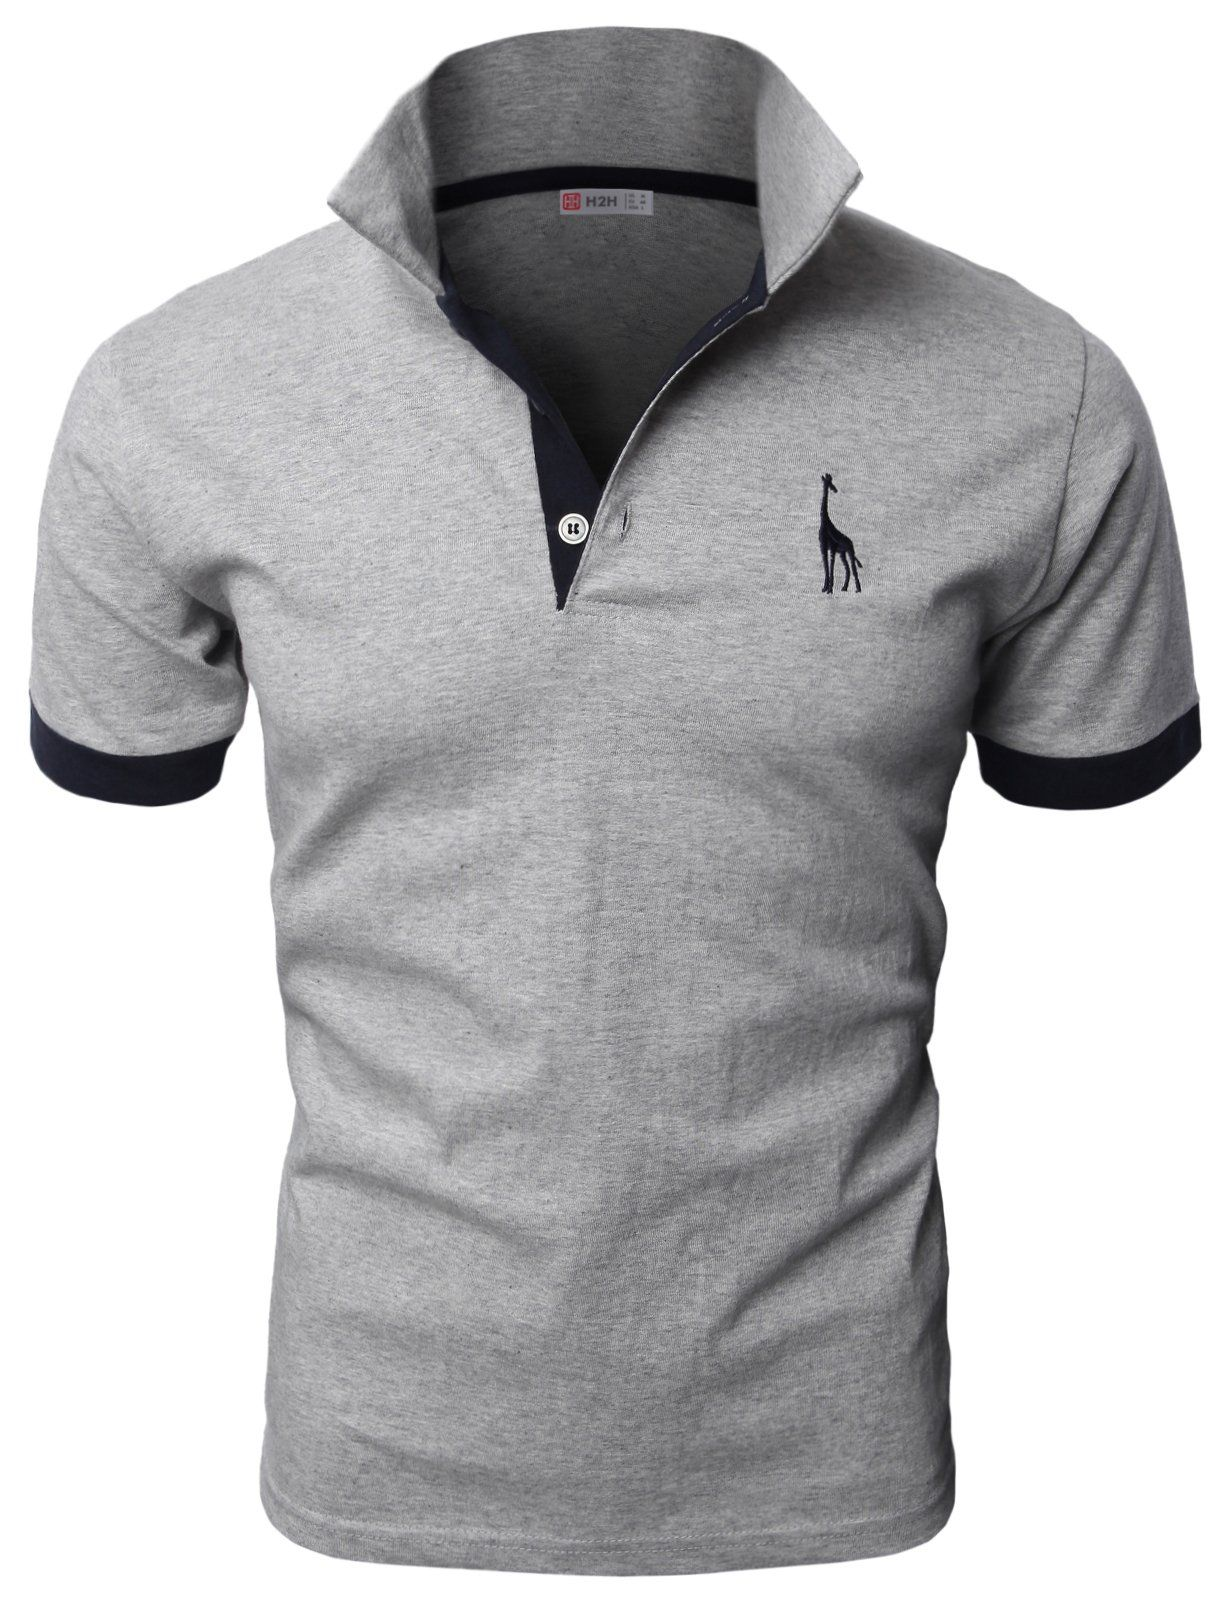 H2h Mens Fine Cotton Giraffe Polo Shirts Of Various Colors Navy Us M